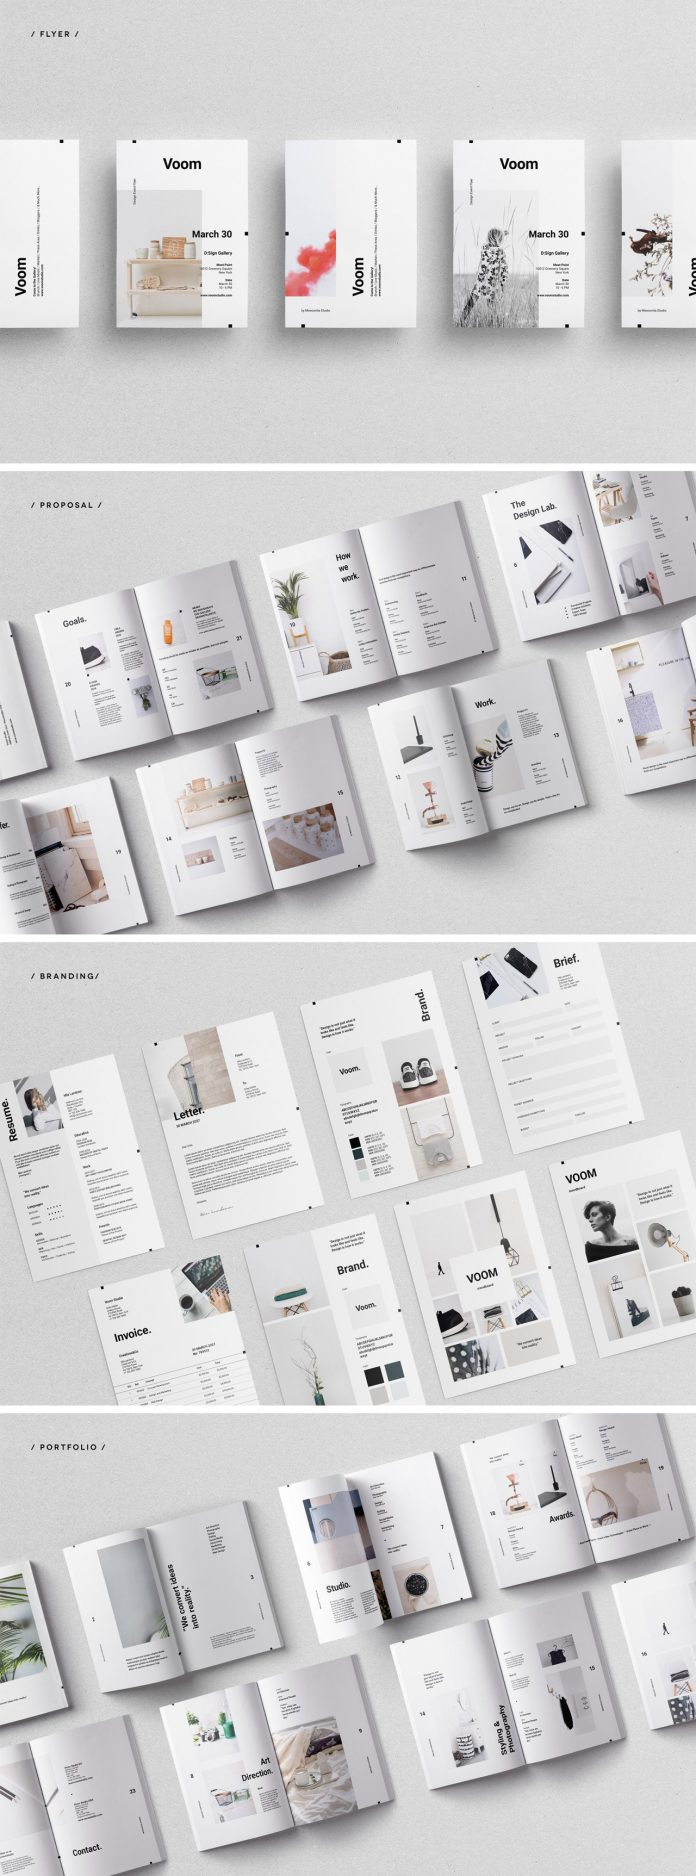 Overview of the Voom branding Adobe InDesign collection from Moscovita.